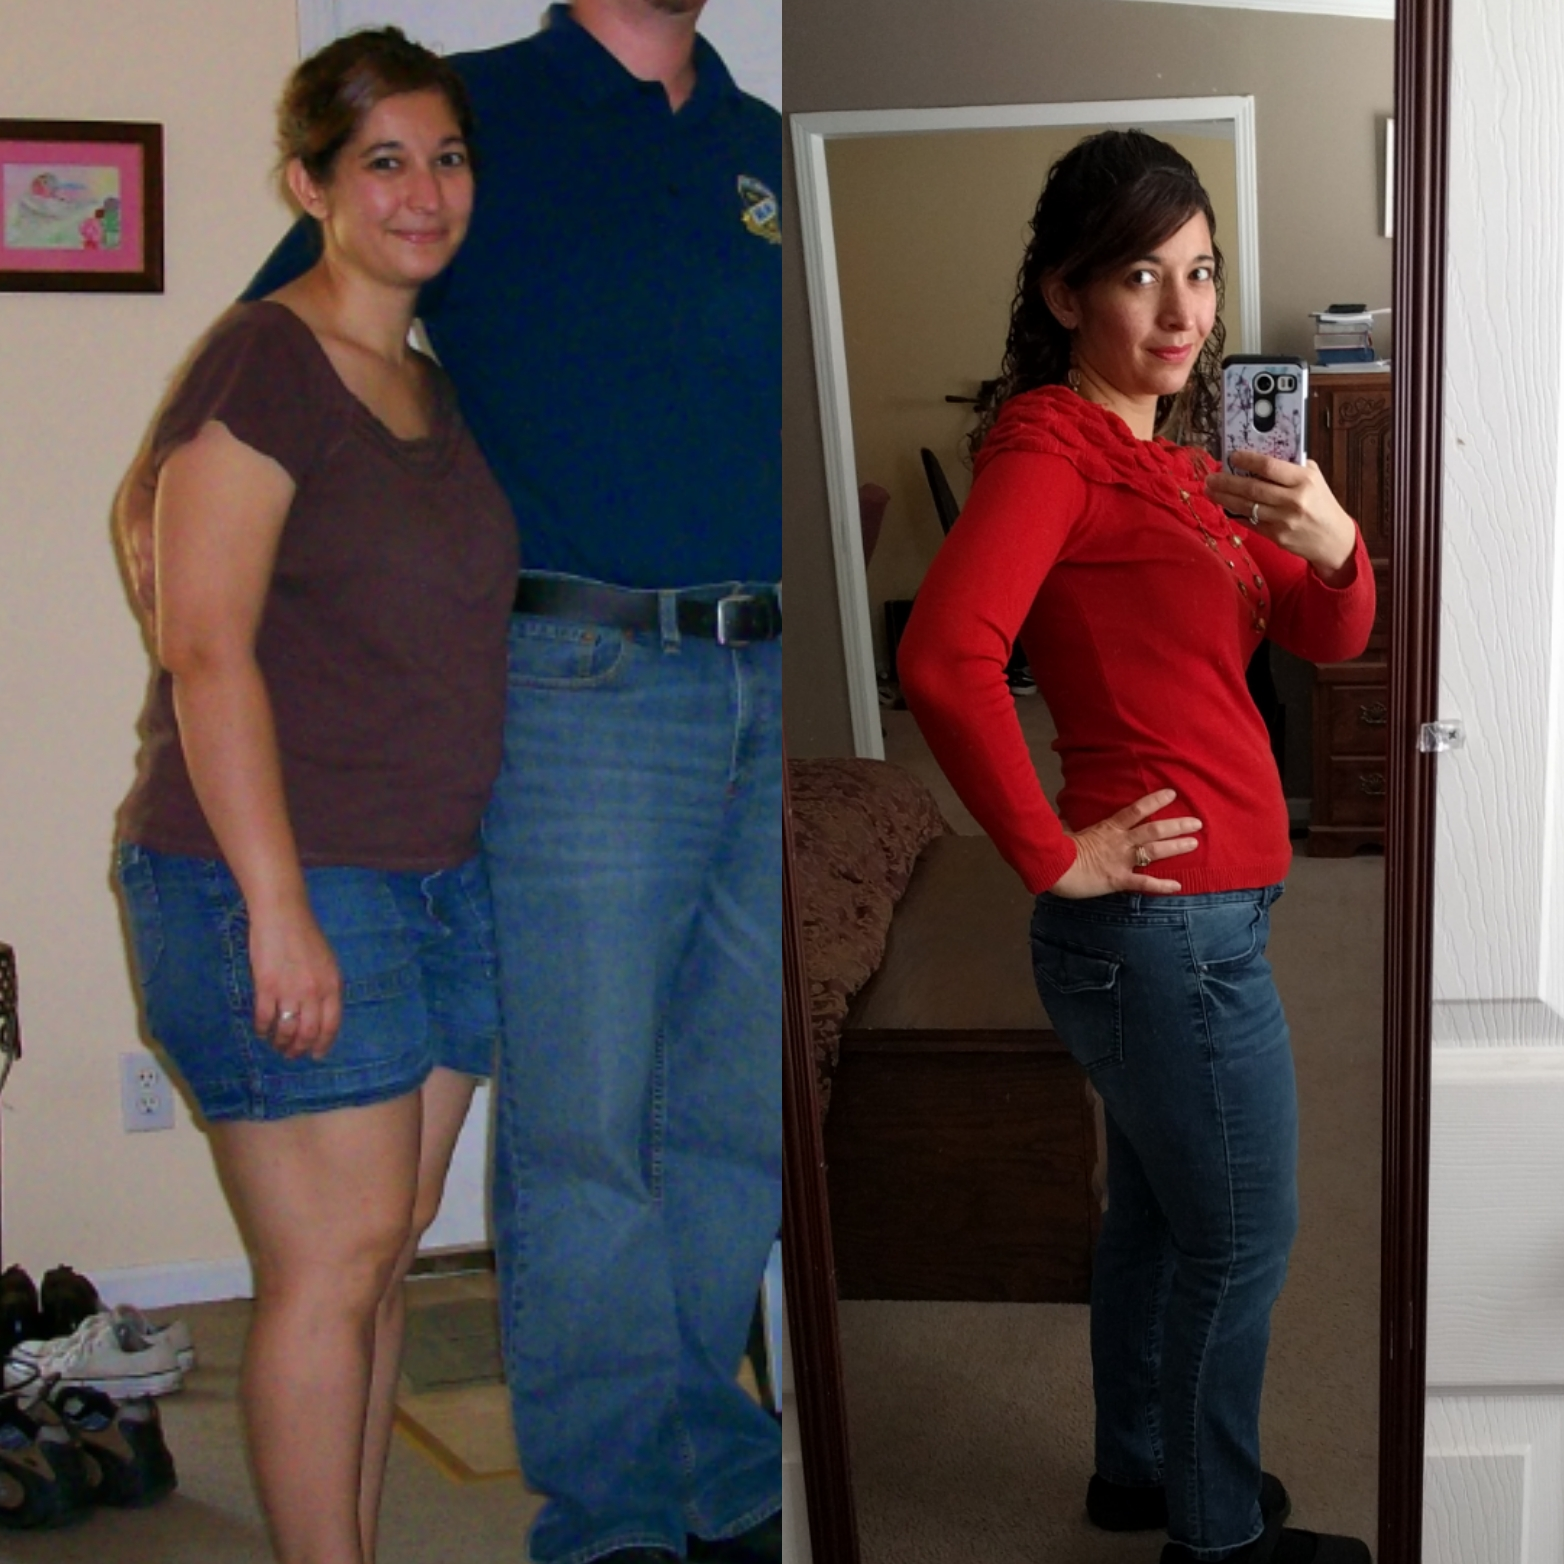 I used to weigh 175 pounds, but then I've lost 40 pounds over the last 4 years.